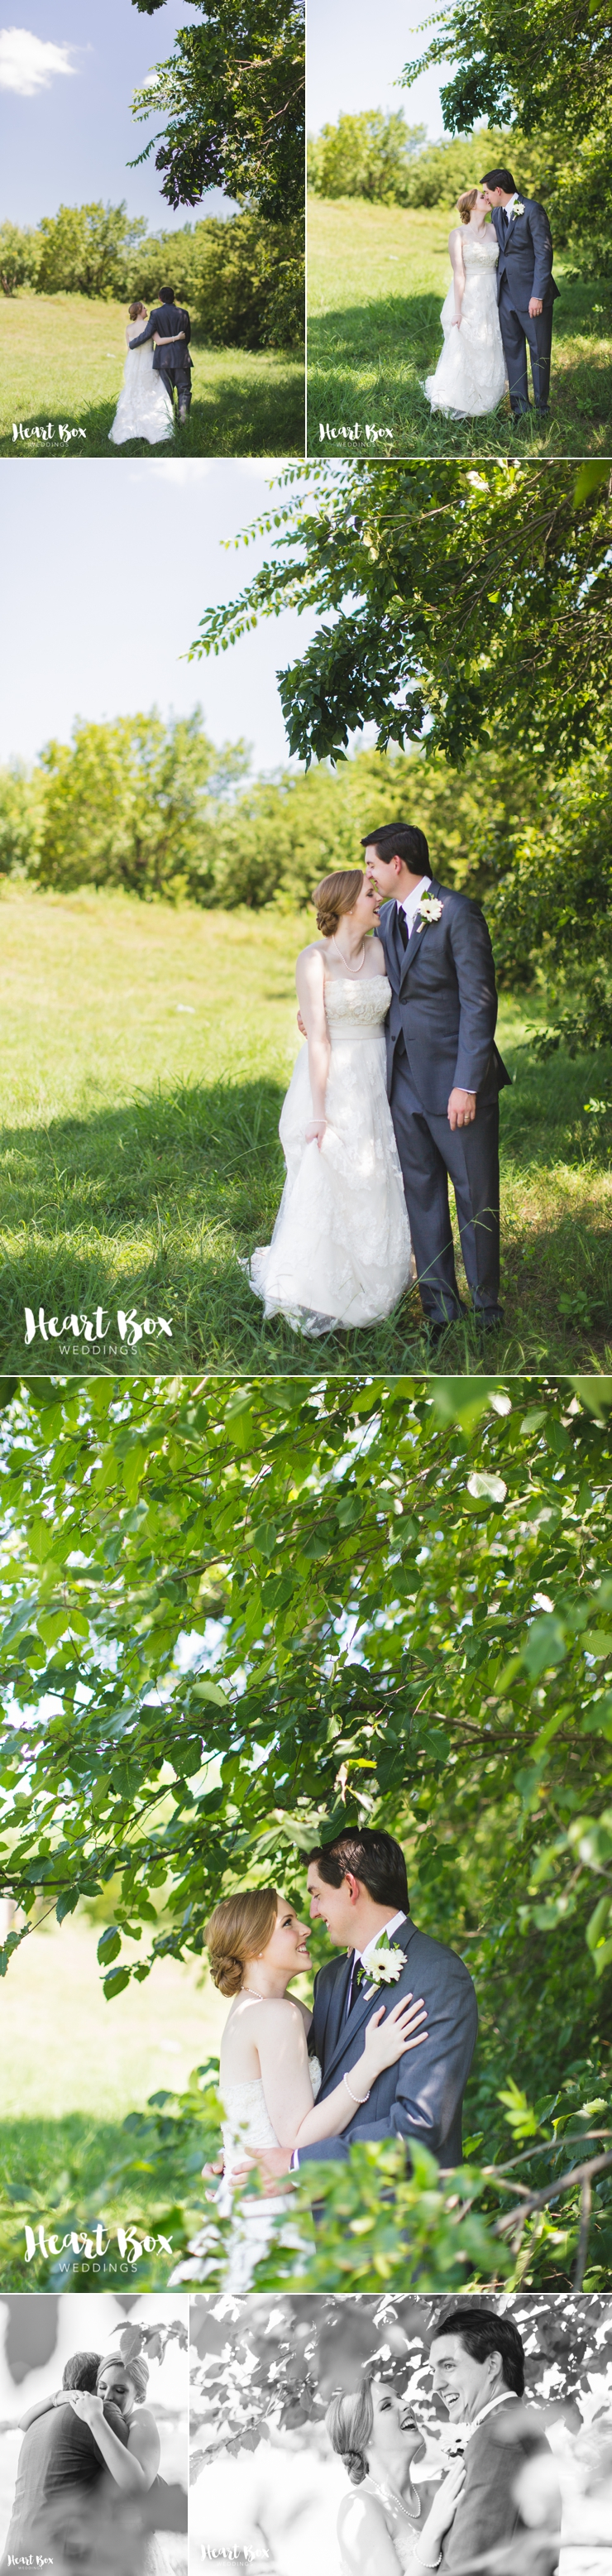 Jewell Wedding Blog Collages 7.jpg